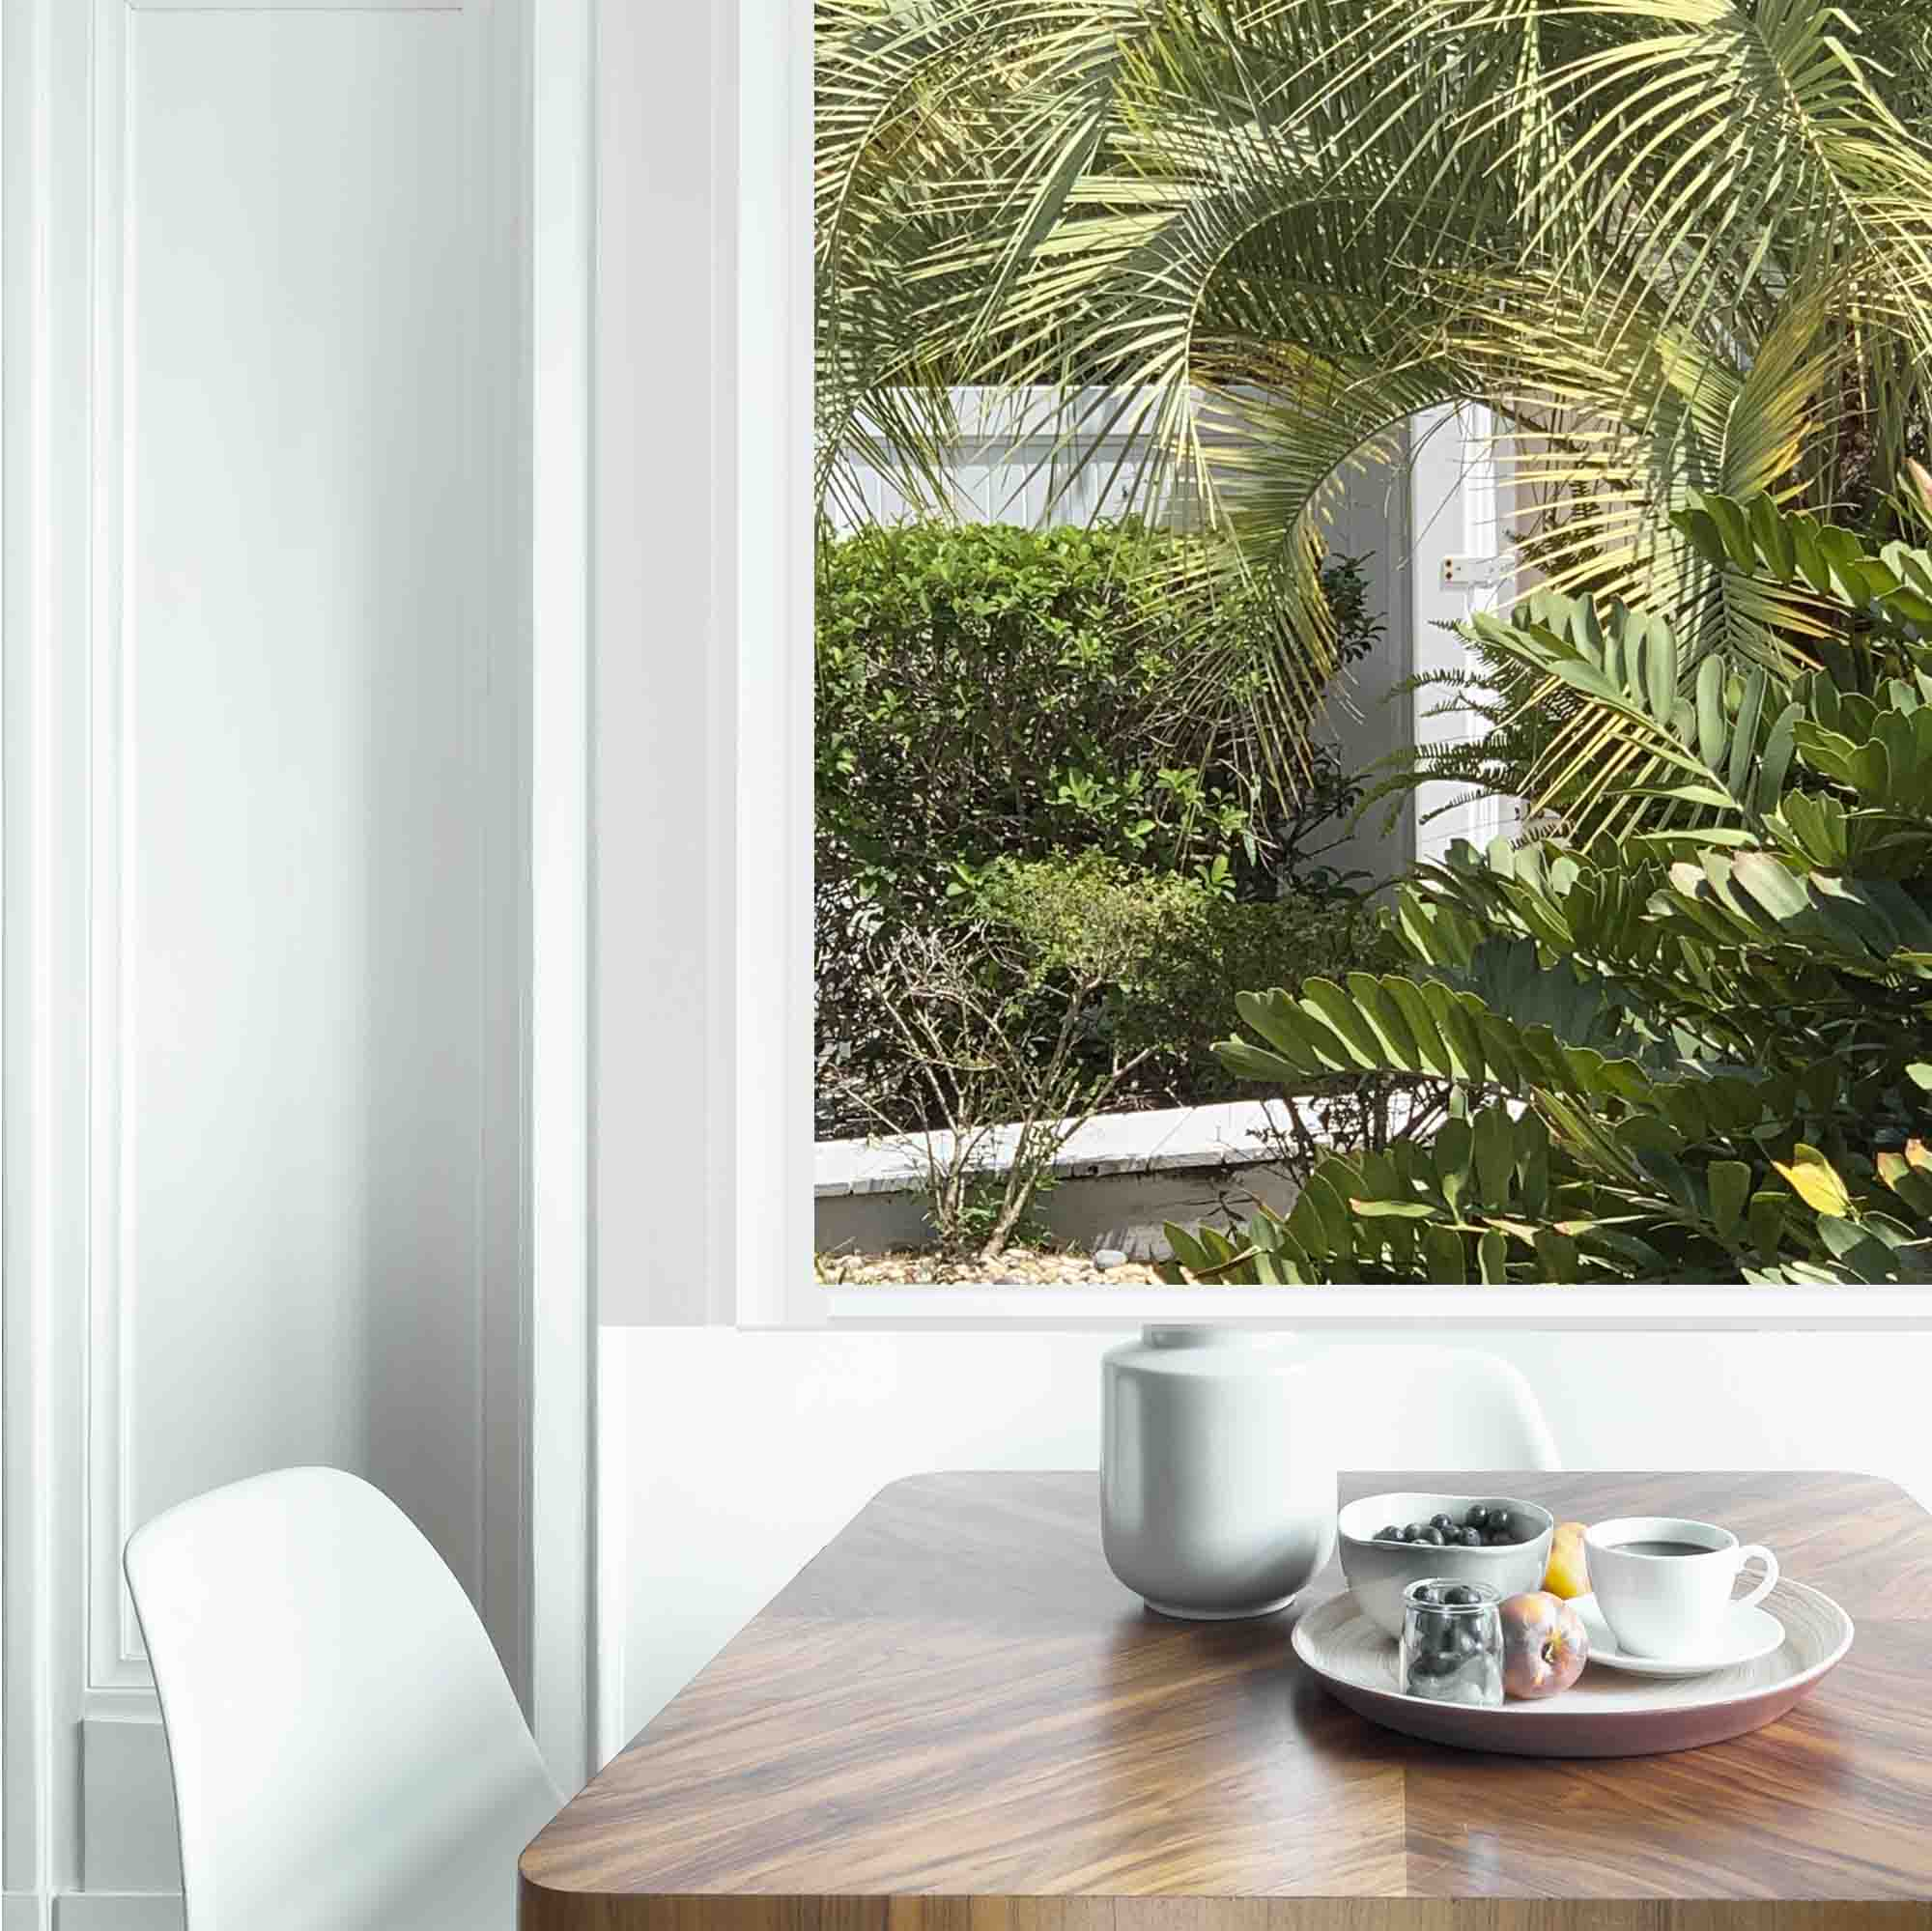 Dining table with fresh flowers and breakfast tray with coffee cup and fruits in real photo of white room interior with empty wall. Paste your painting here